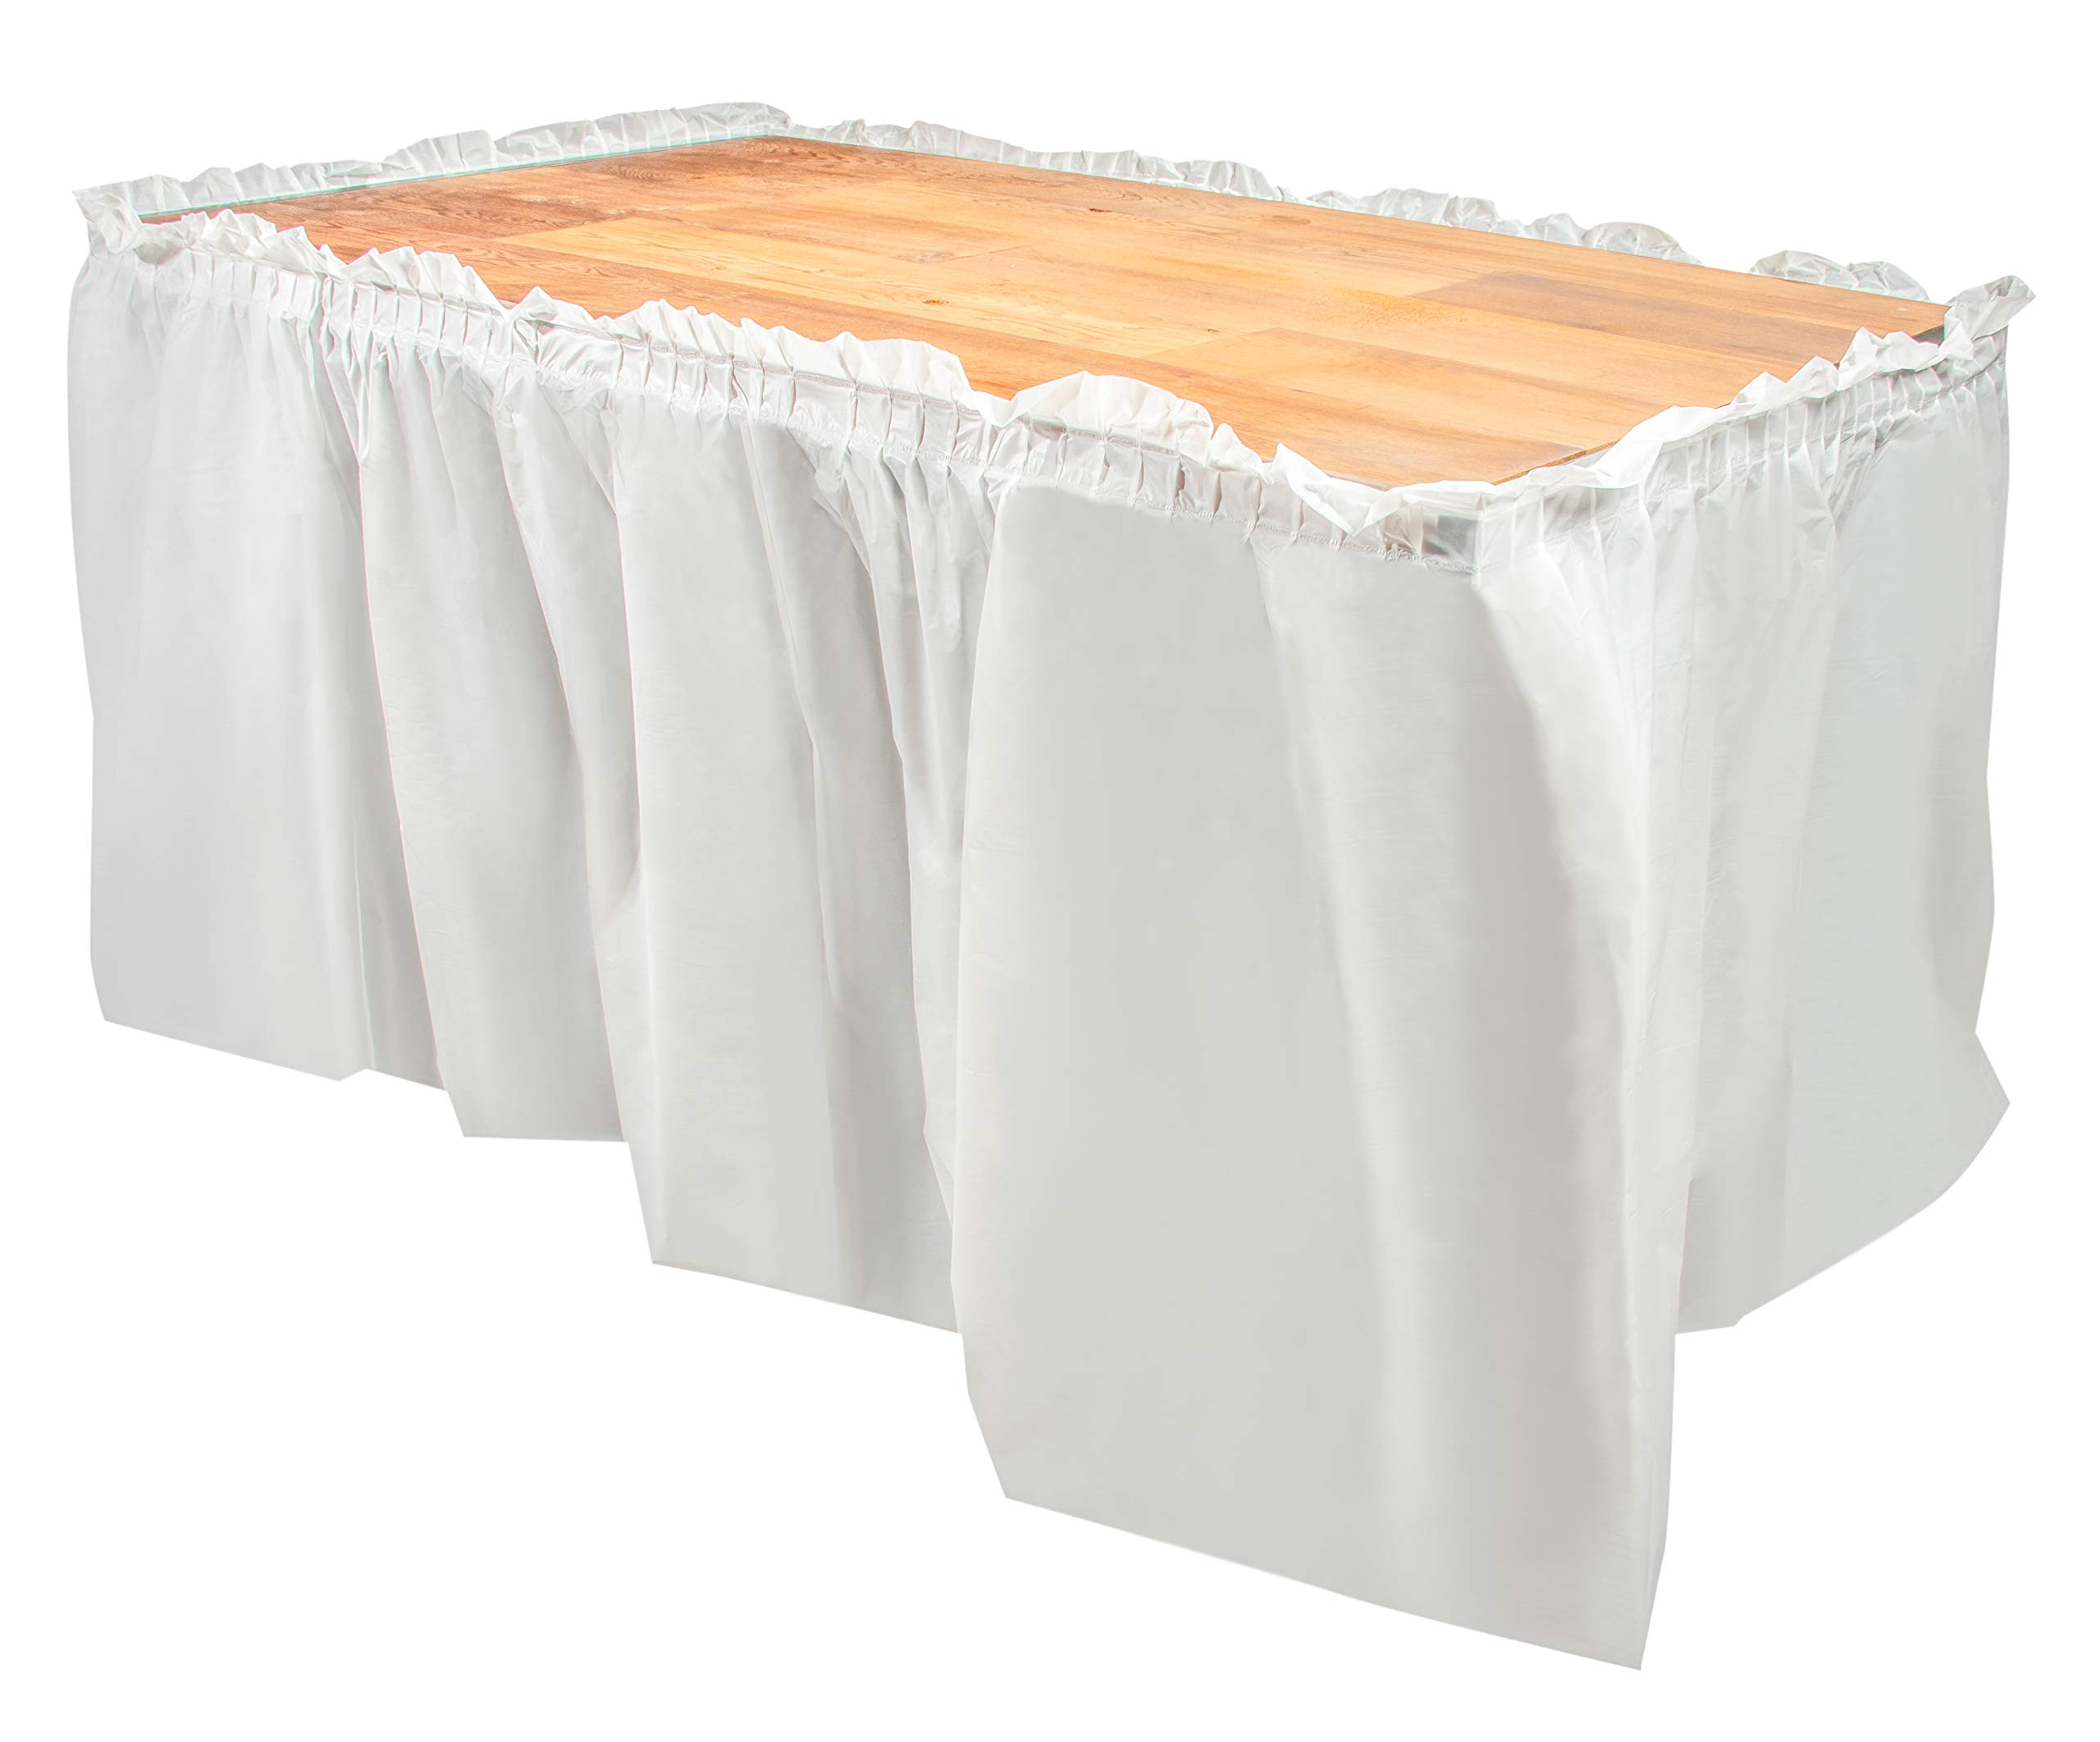 Disposable Table Skirts - 6-Pack Ruffled Plastic Table Skirts - Perfect for Weddings, Engagement Parties, Birthdays, Business Events, Baby Showers, White, Suitable for Tables Up To 8 Feet Long by Juvale